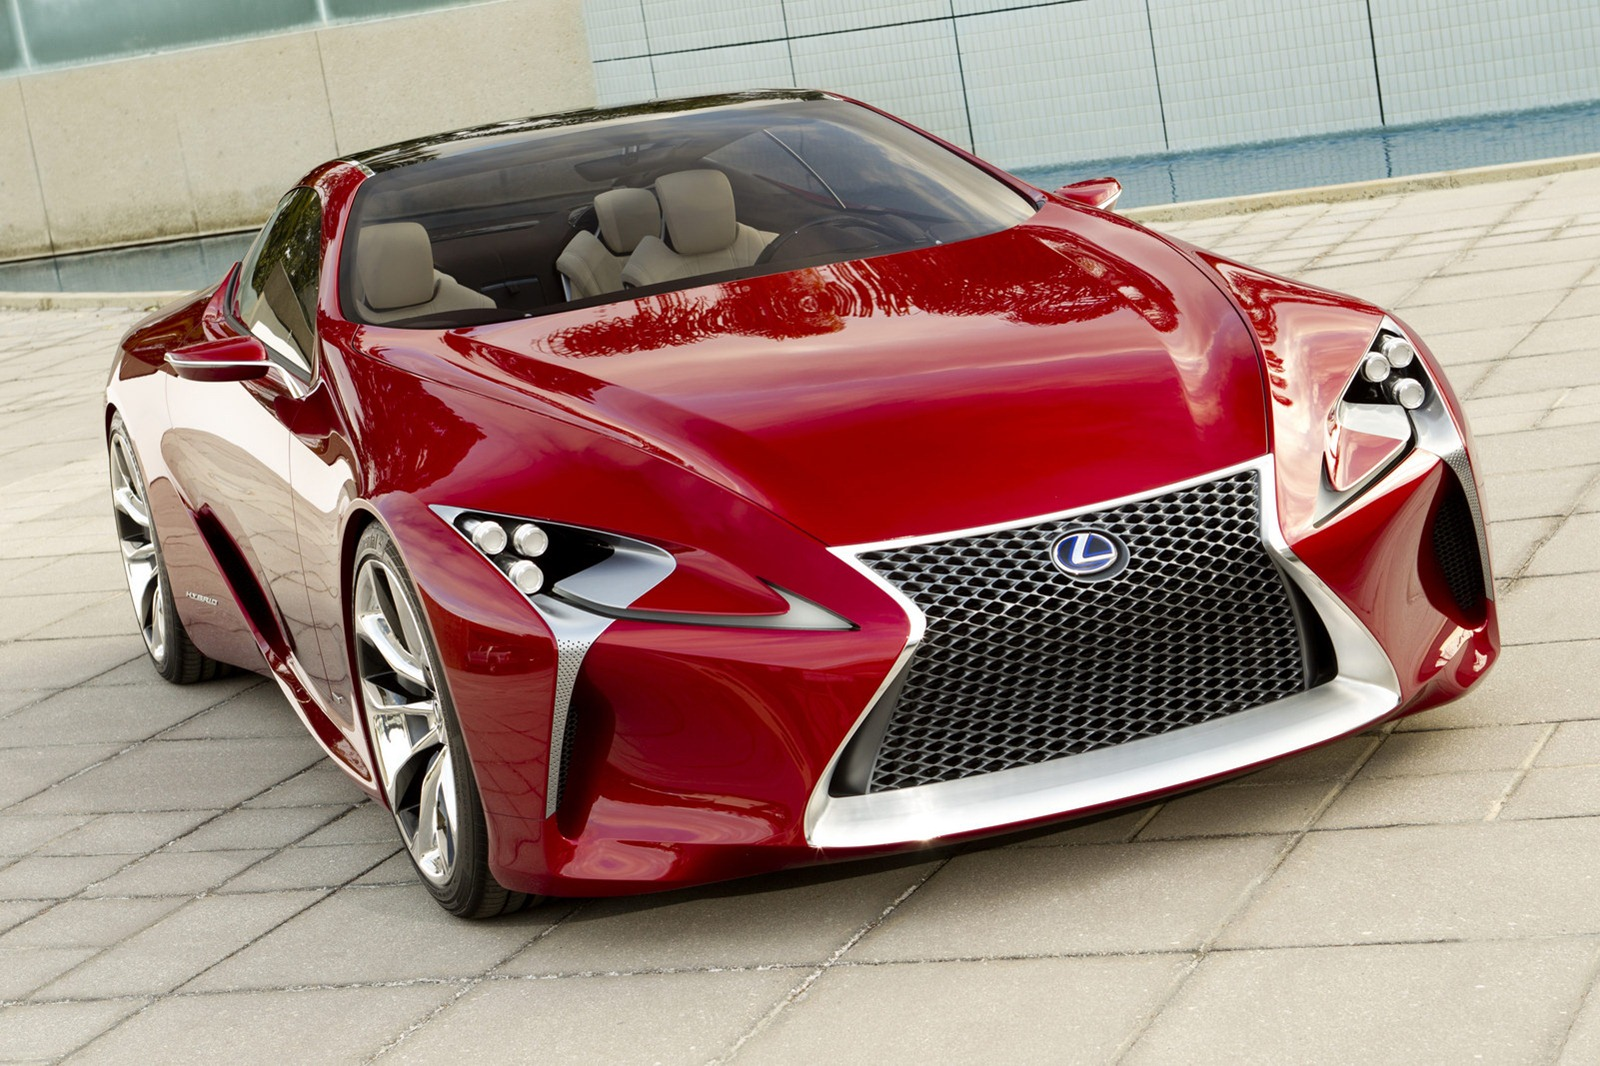 Lexus LF-LC Revealed Further As New Images Surface